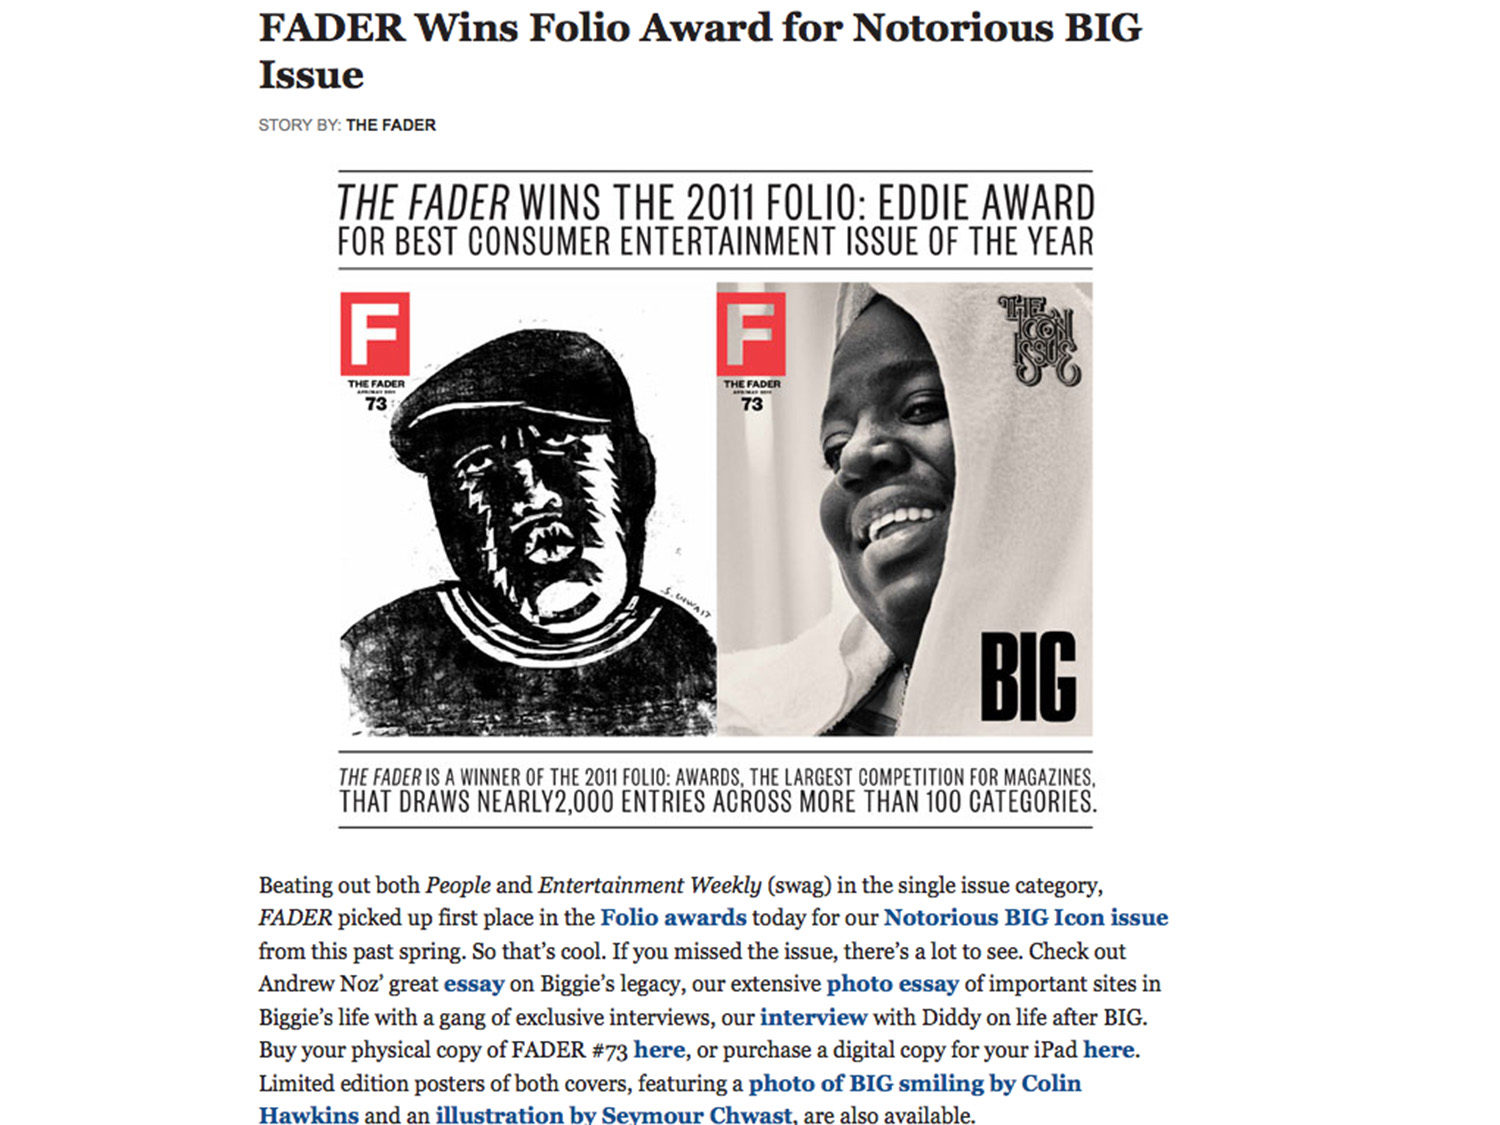 Fader biggie award